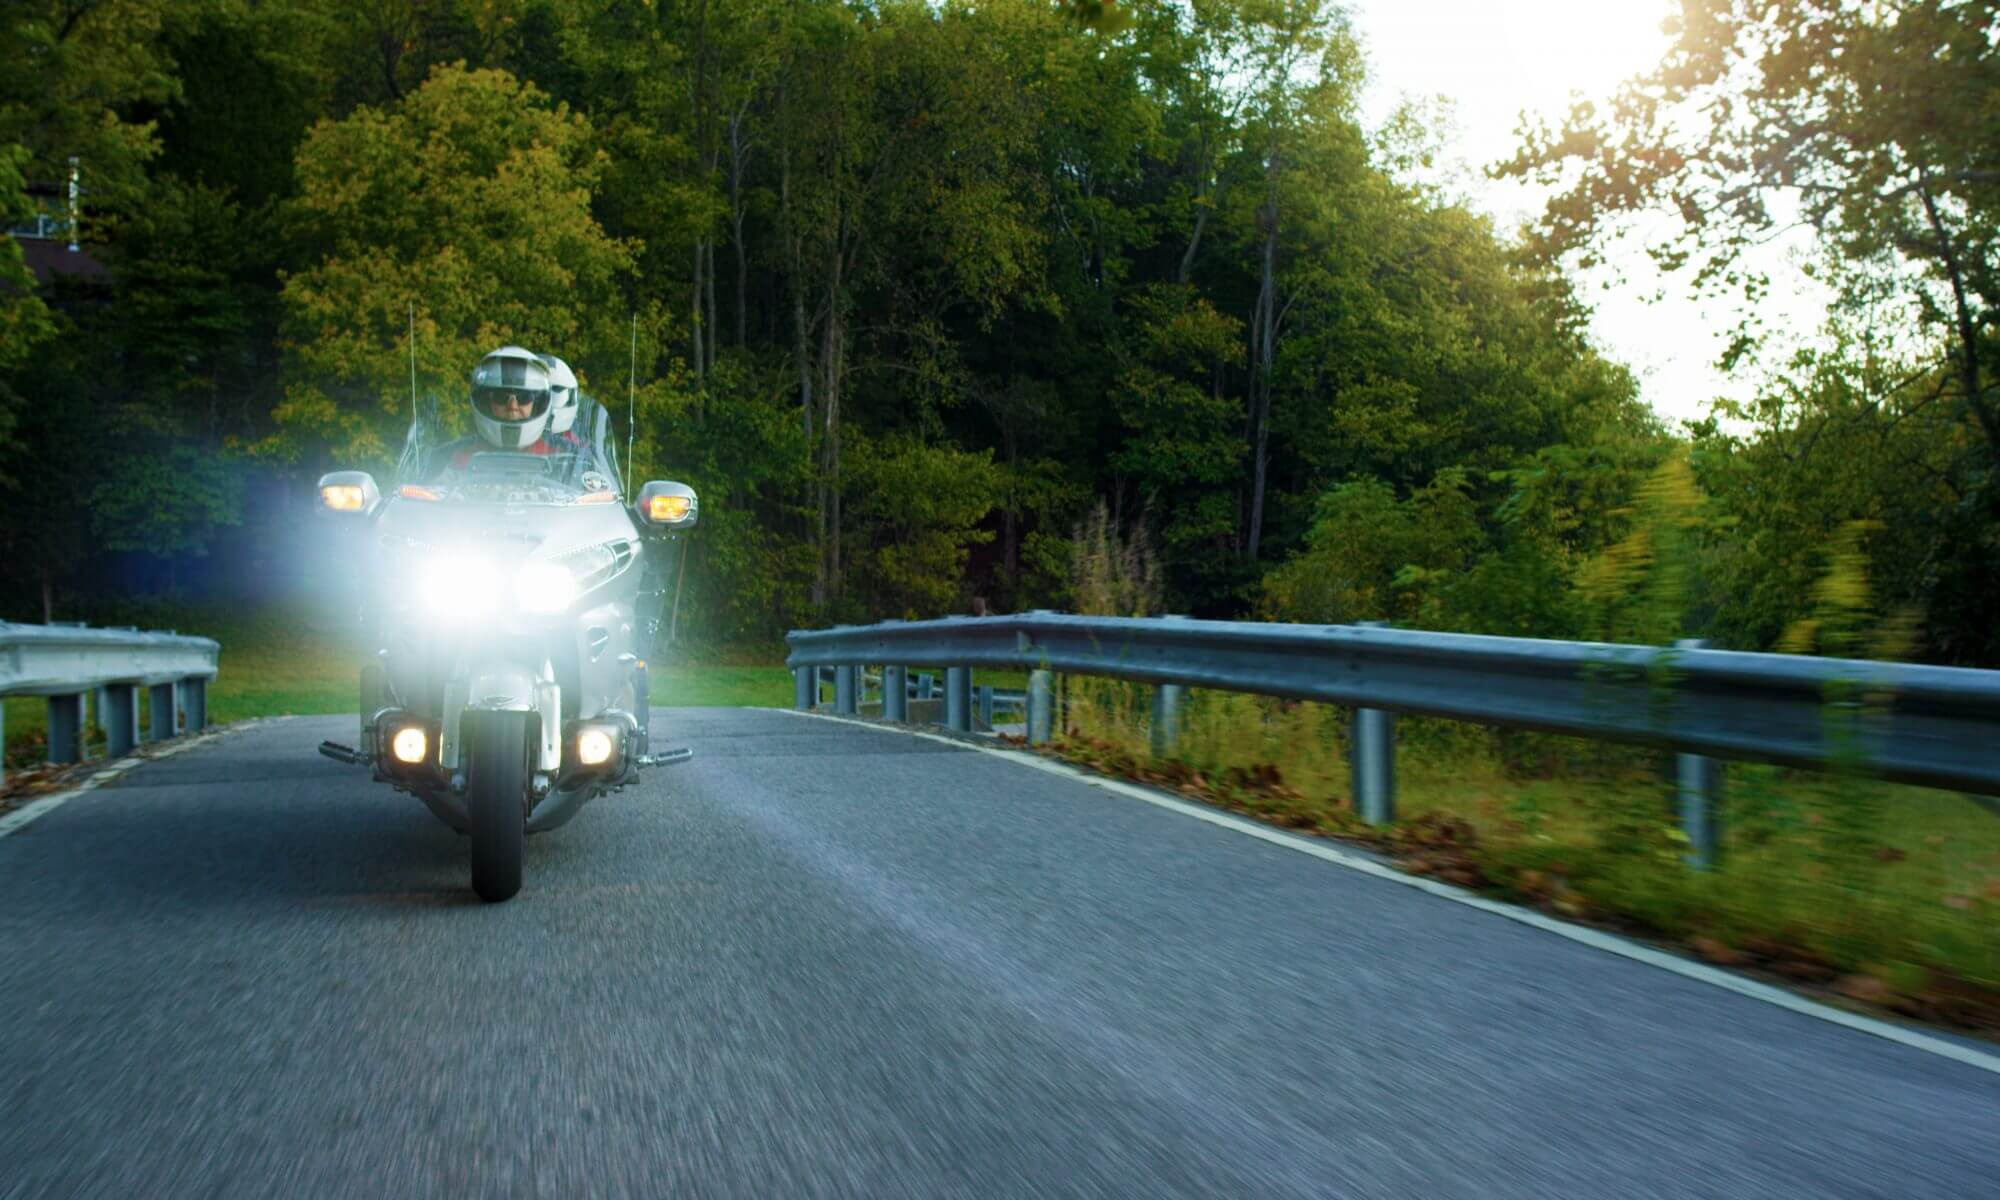 Is Your Motorcycle Coverage a Perfect Fit?